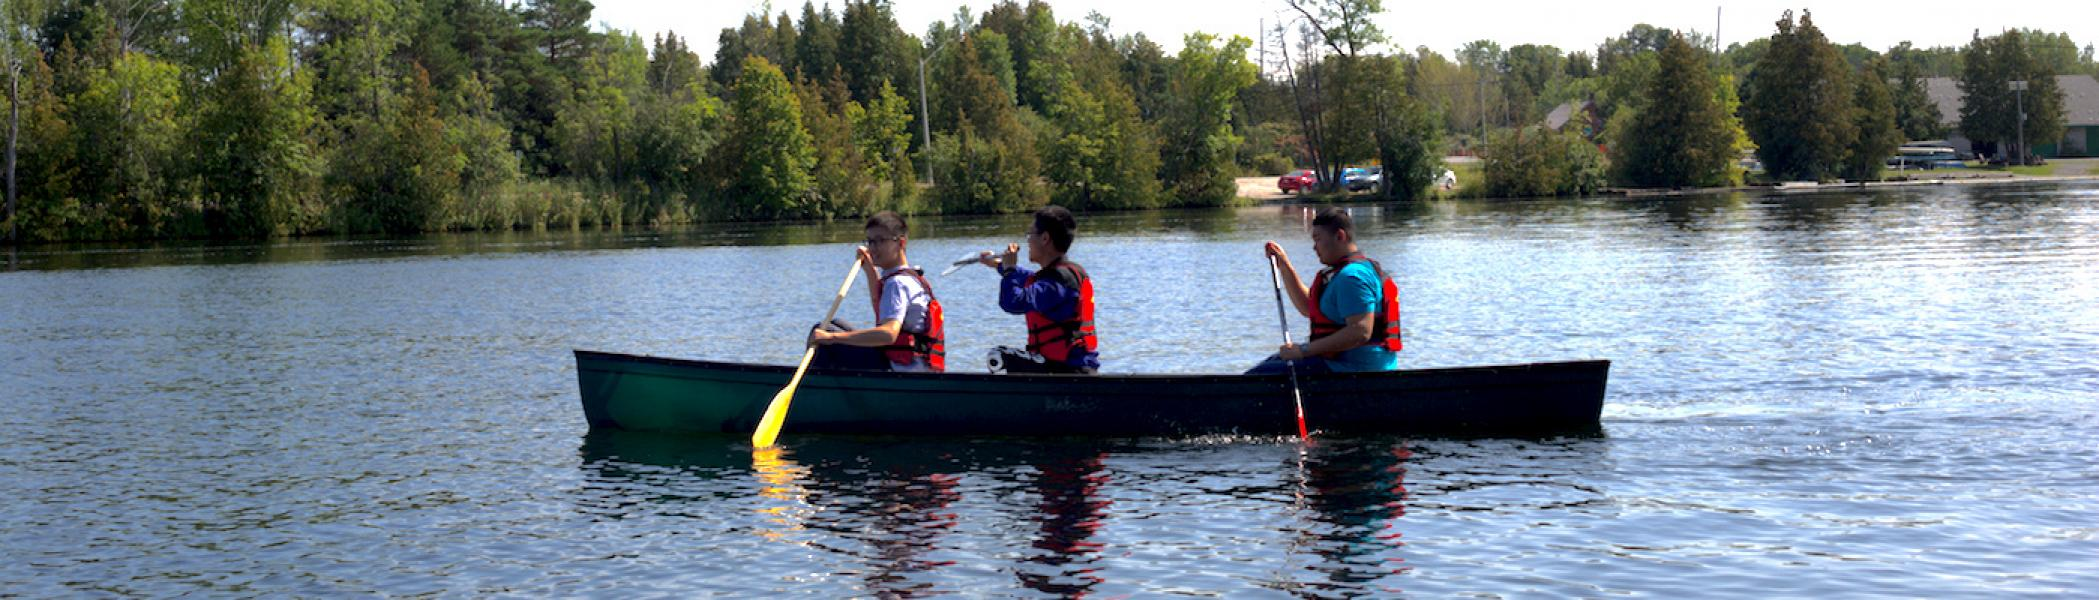 3 students in a canoe on the Otonabee river